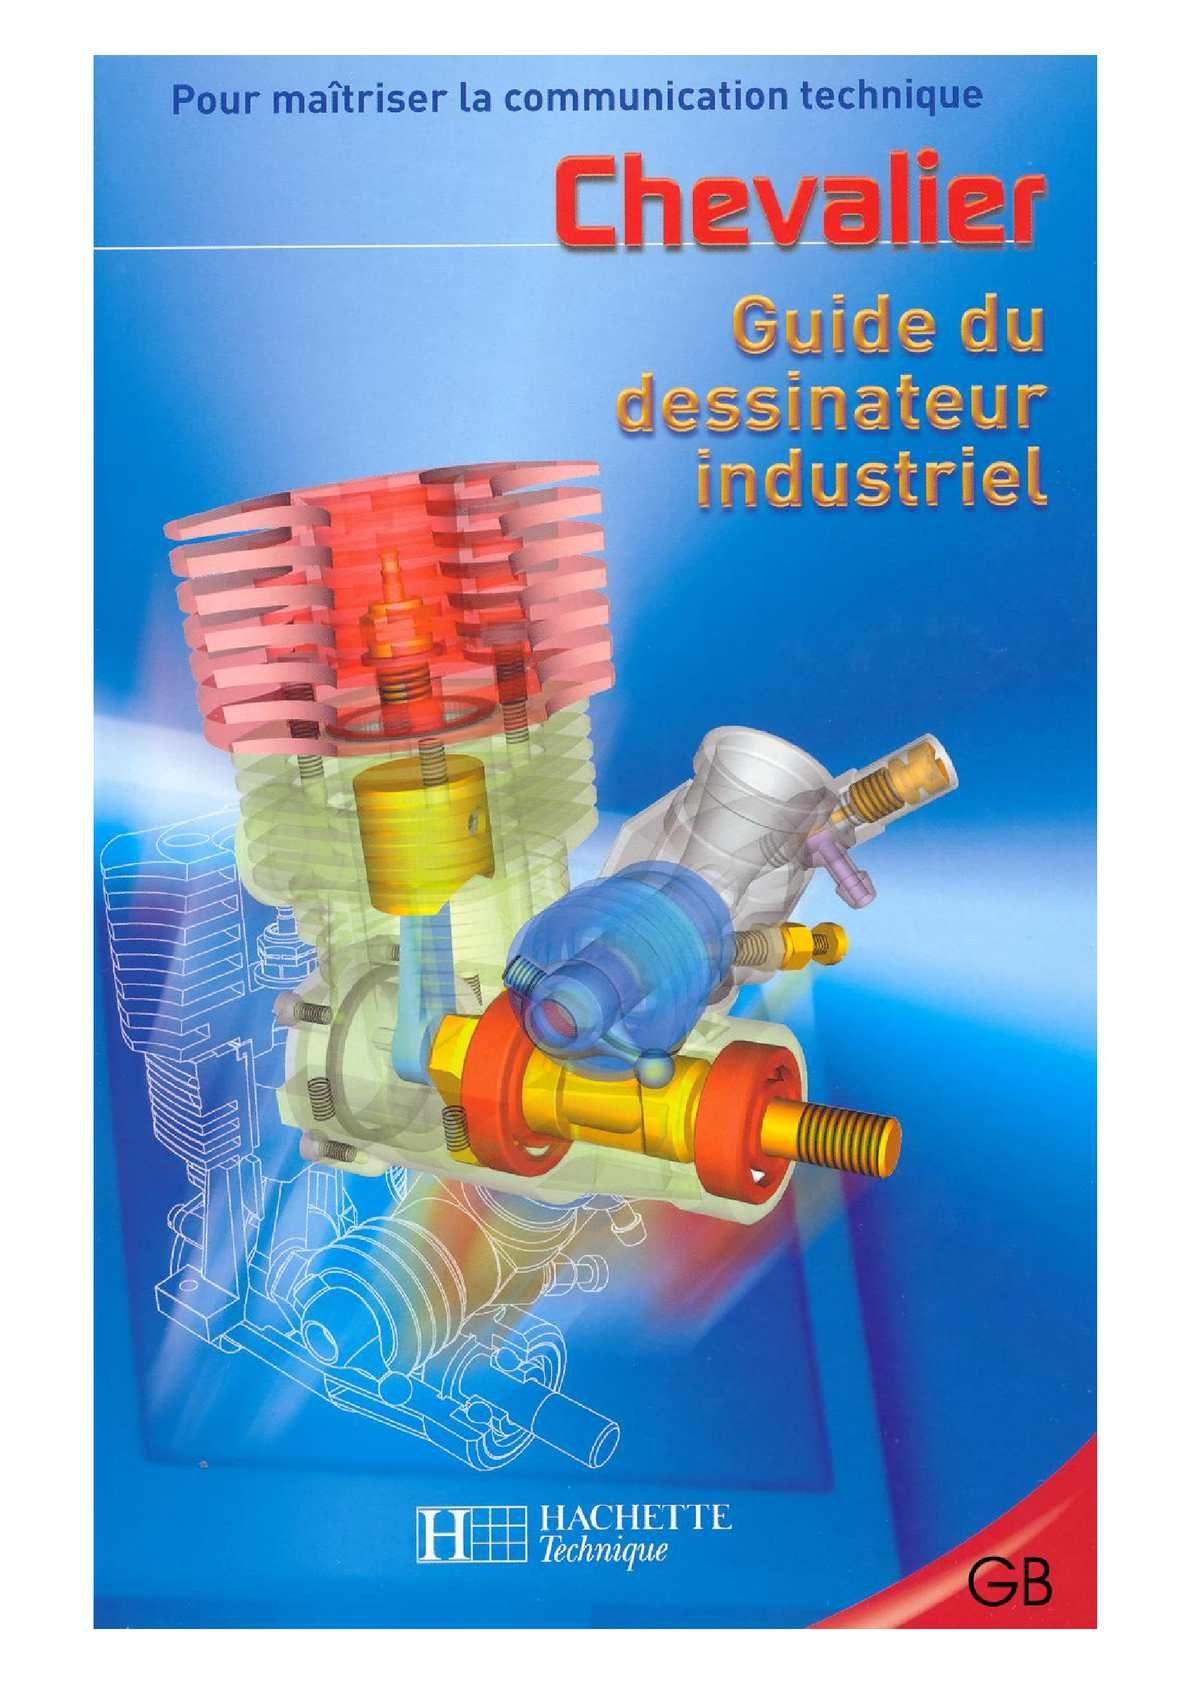 Pdf Print Guide Du Dessinateur Industriel Chevalier Books To Read Online Books Orthographic Drawing